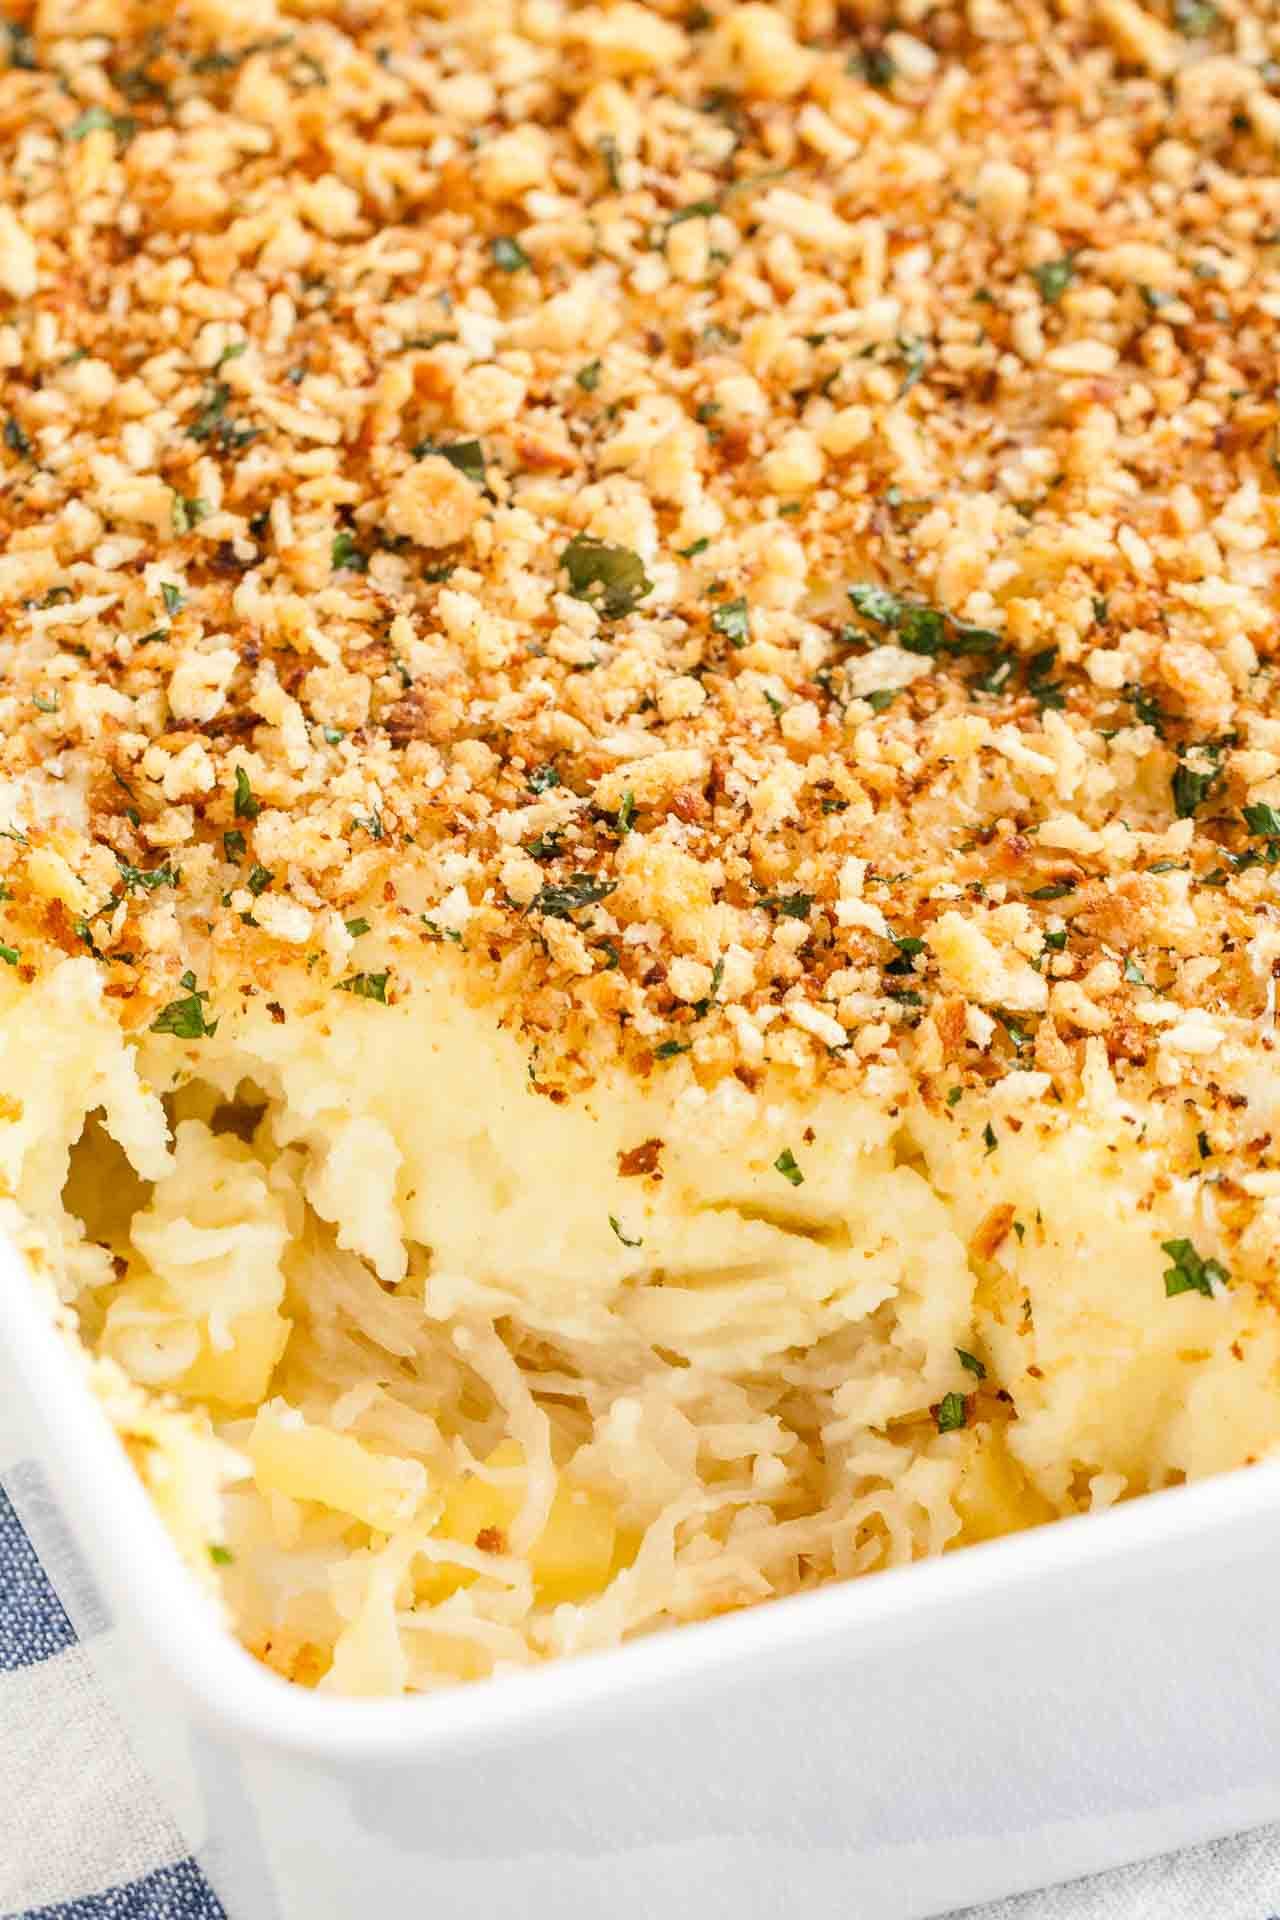 Sauerkraut Mashed Potato Casserole is a warm and hearty dish made with sauerkraut, apples and creamy homemade mashed potatoes. It's a delicious comfort food side that you can make ahead and that's always a hit!